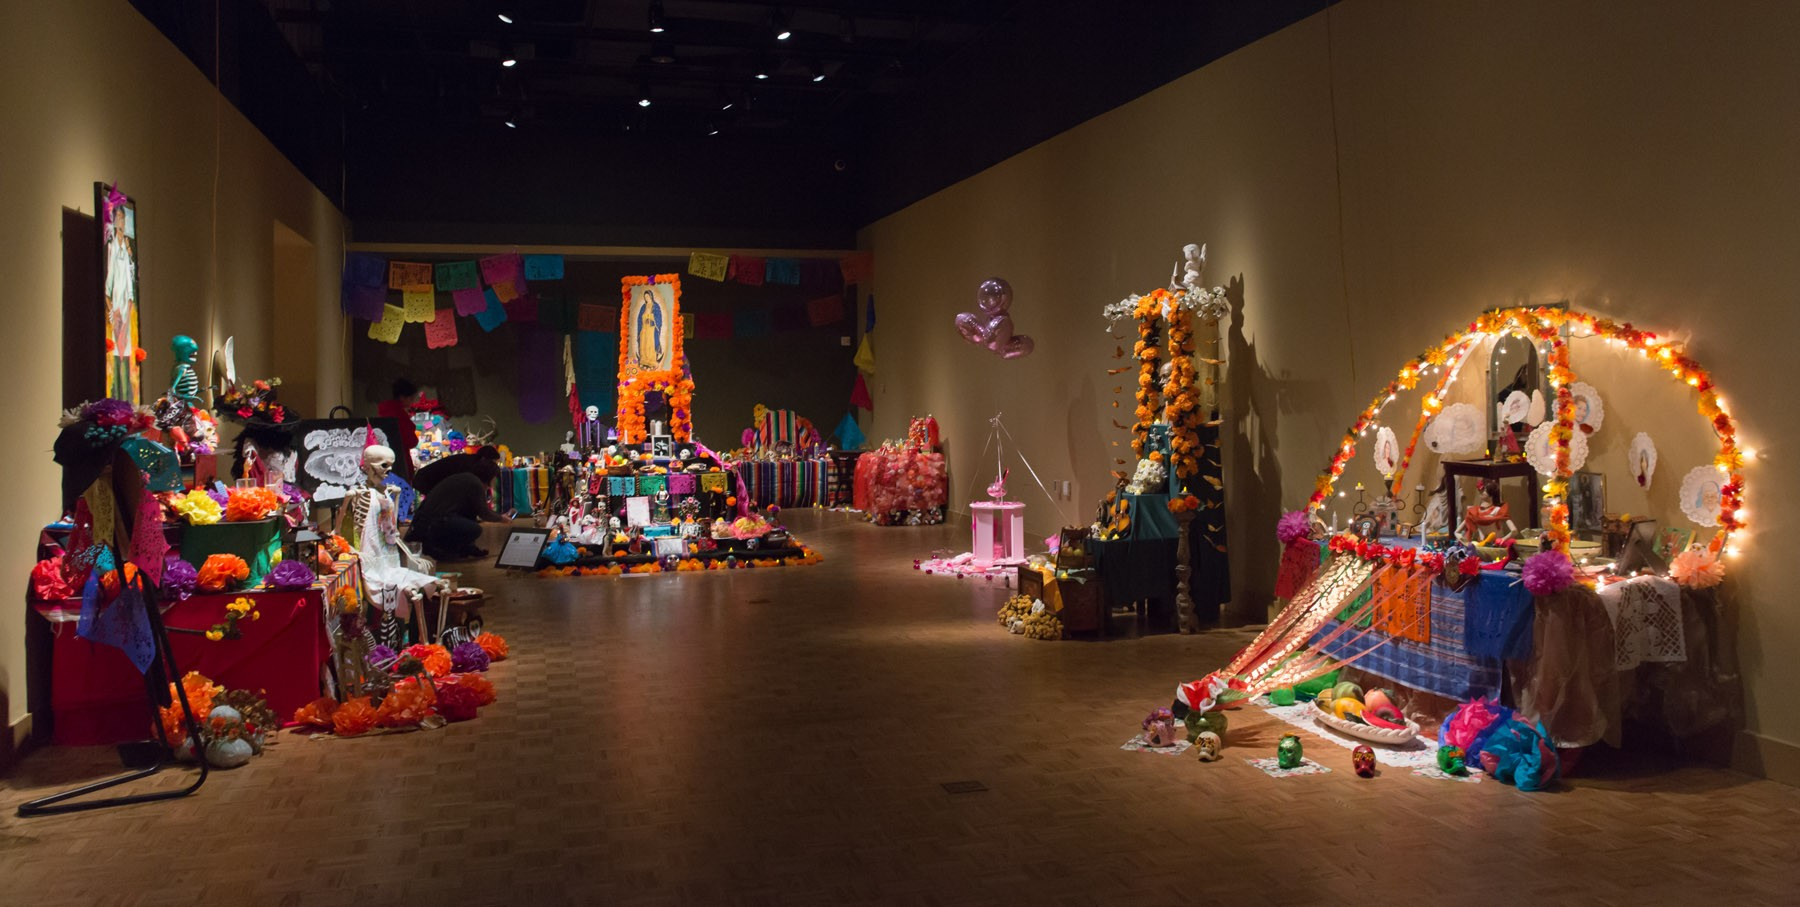 the dia wants you to build an ofrenda the scene